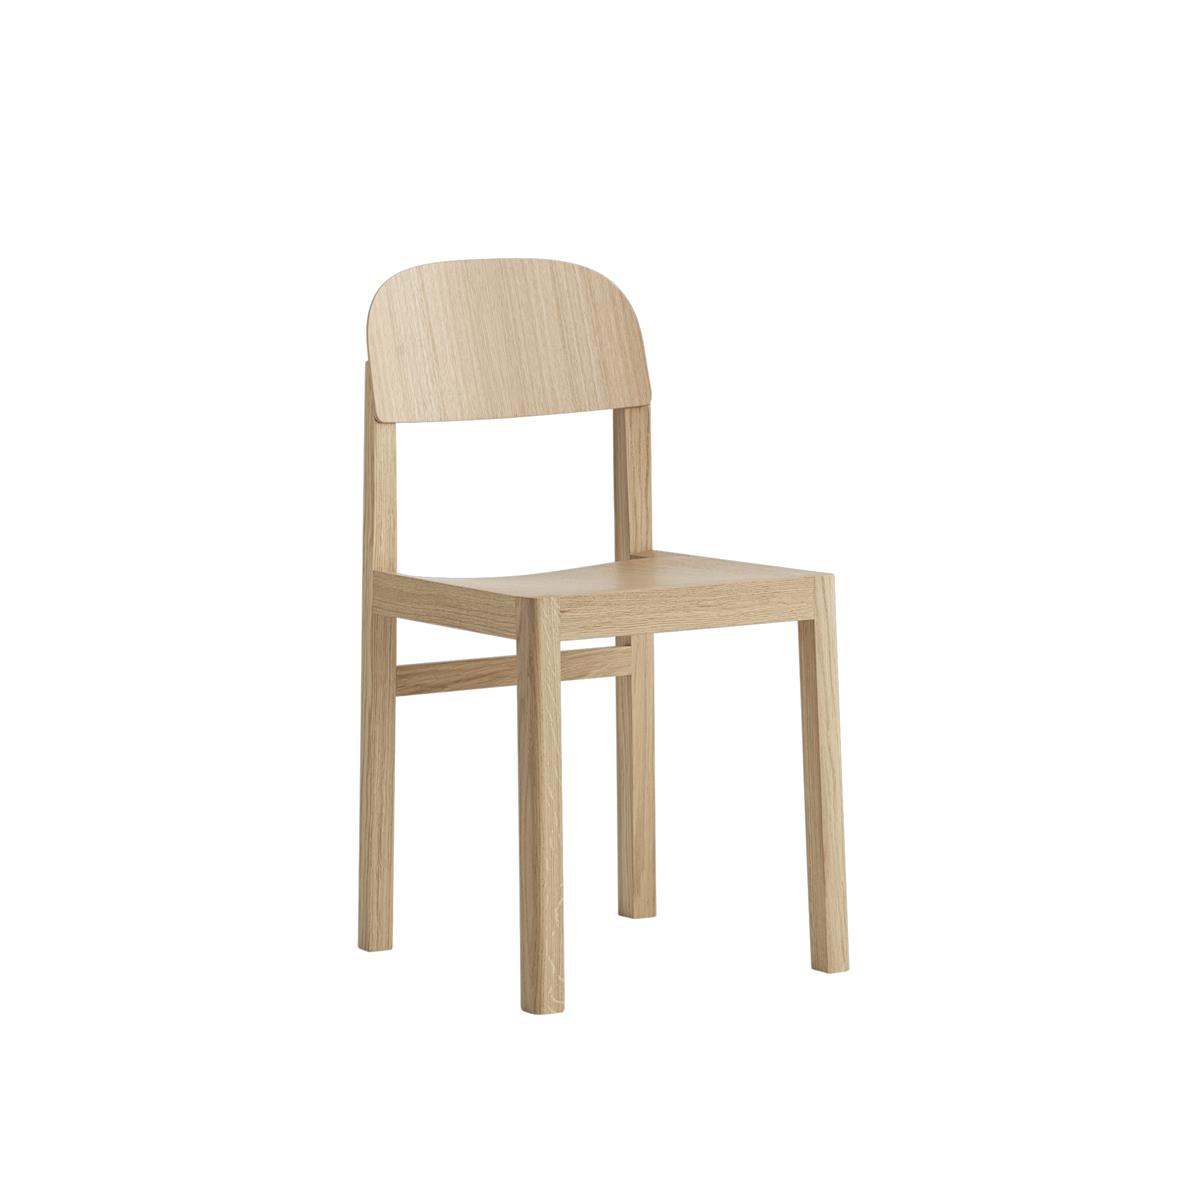 Workshop Chair - eik